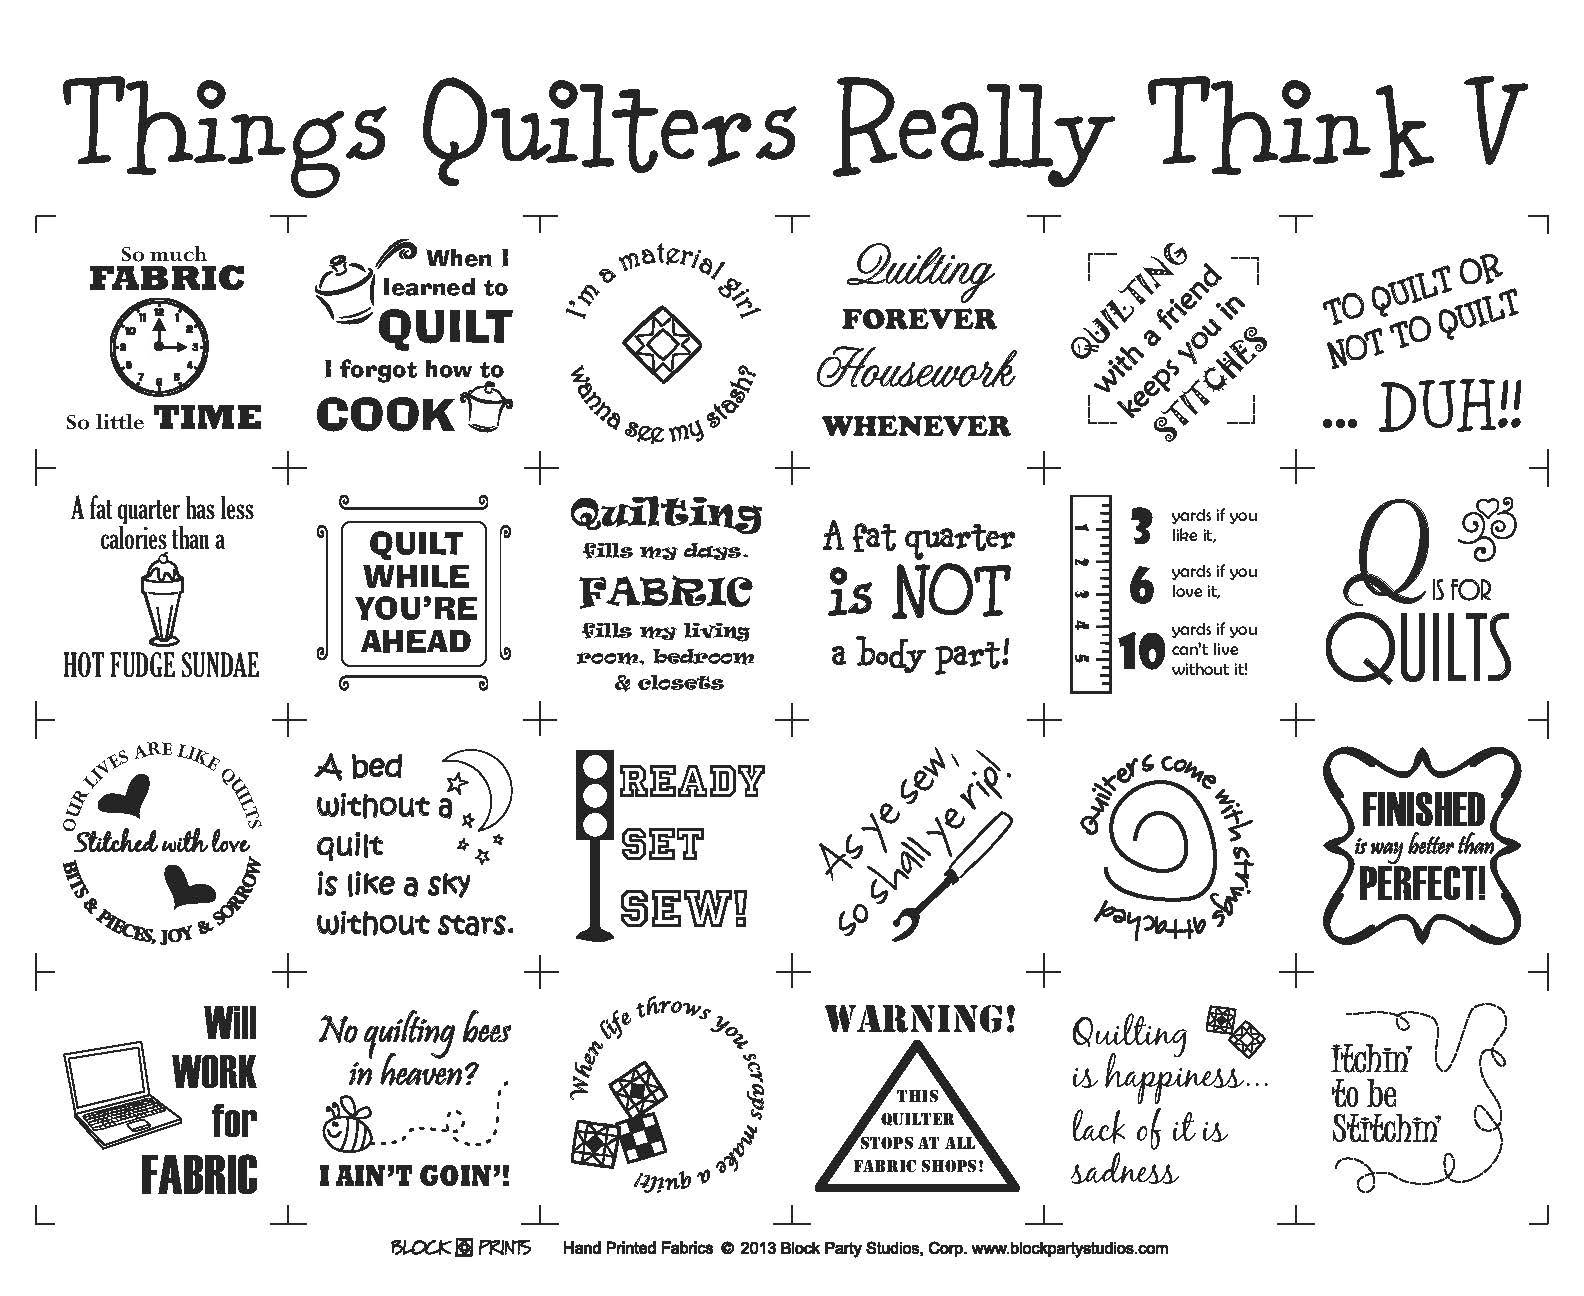 Things Quilters Really Think V Panel